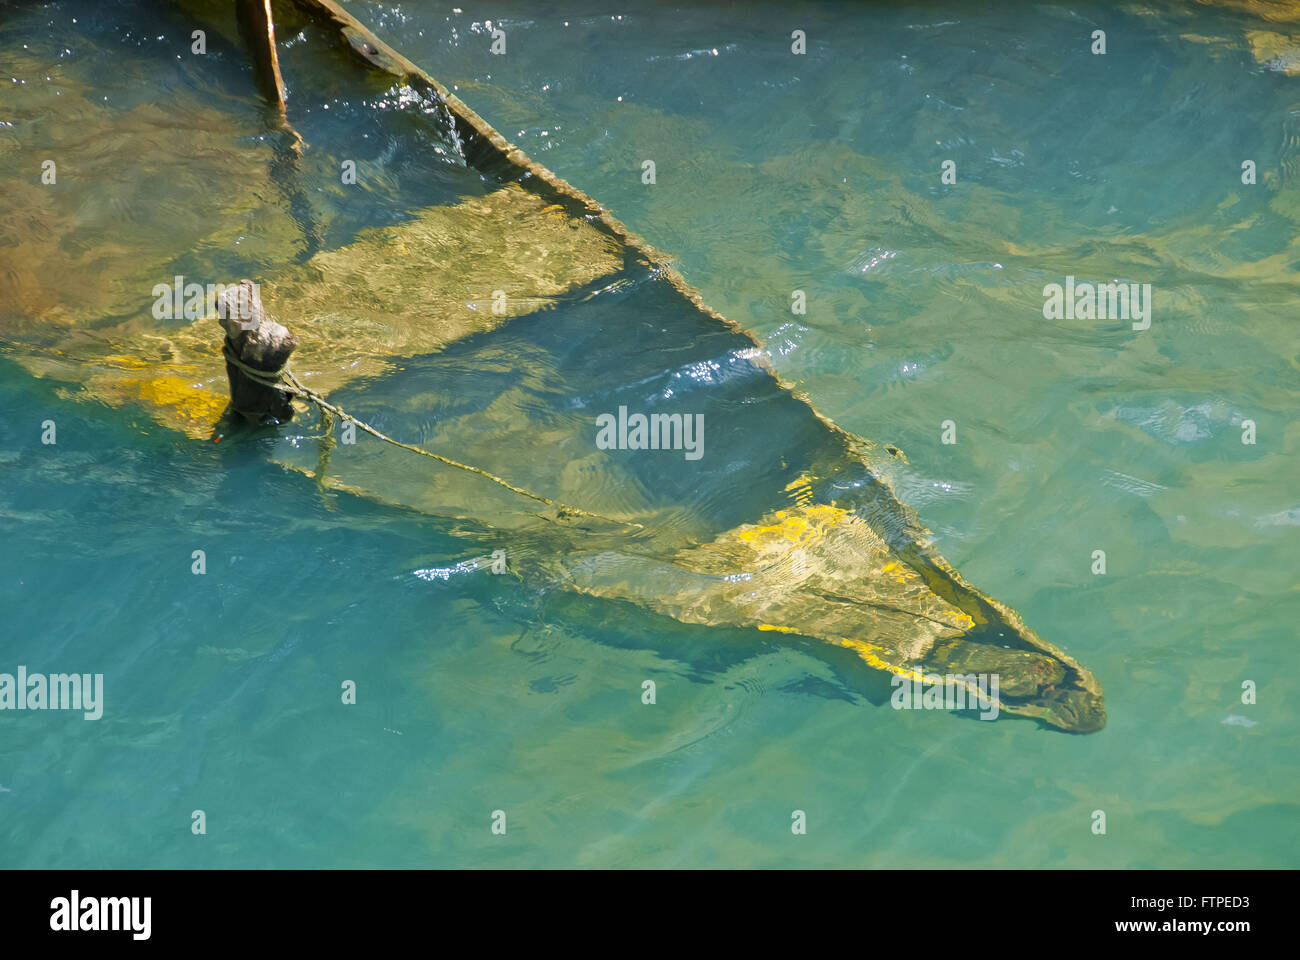 Canoe fisherman drowned in the Rio Sao Francisco Canion also known as Paul Canion Afon - Stock Image